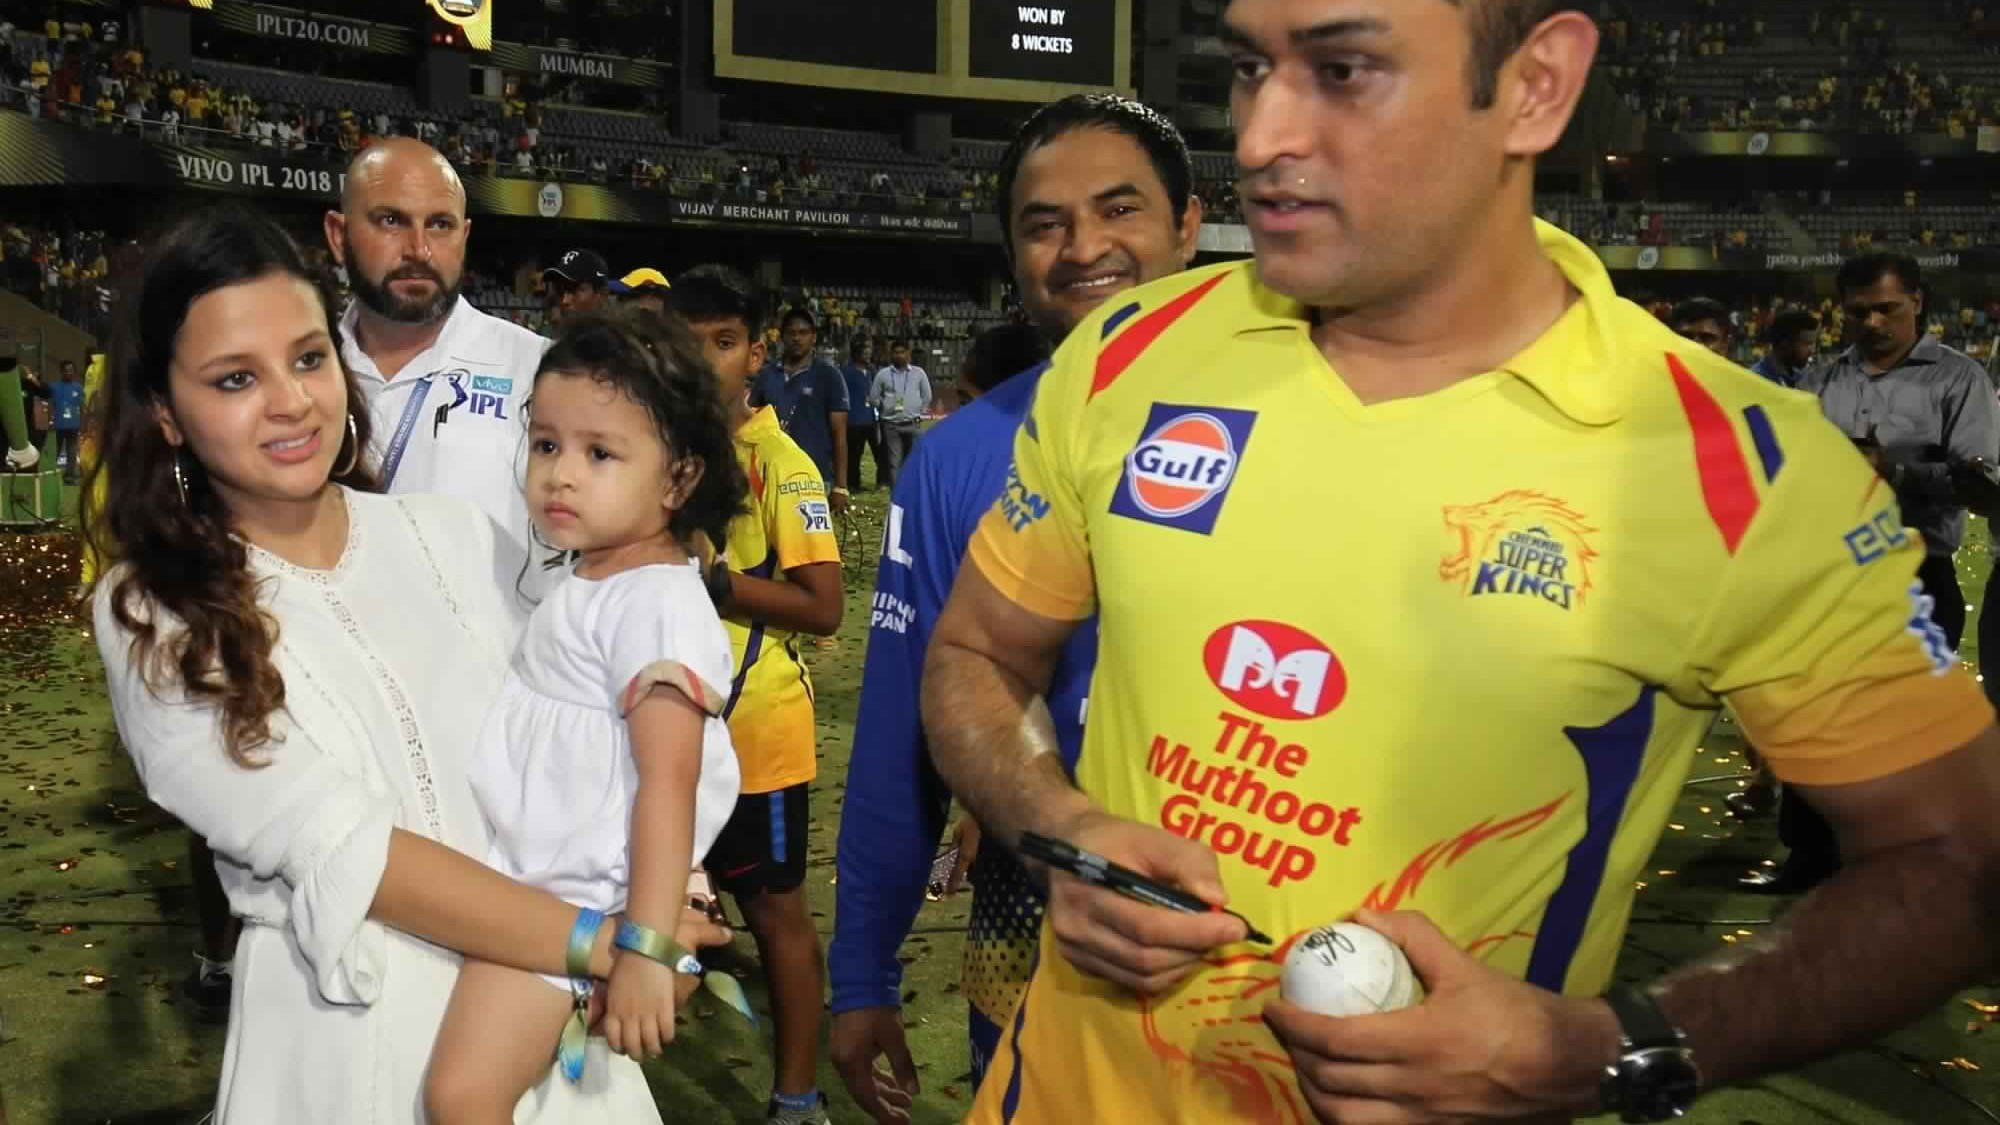 IPL 2020: MS Dhoni's daughter Ziva gets rape threats after CSK's loss; Twitterverse fumes